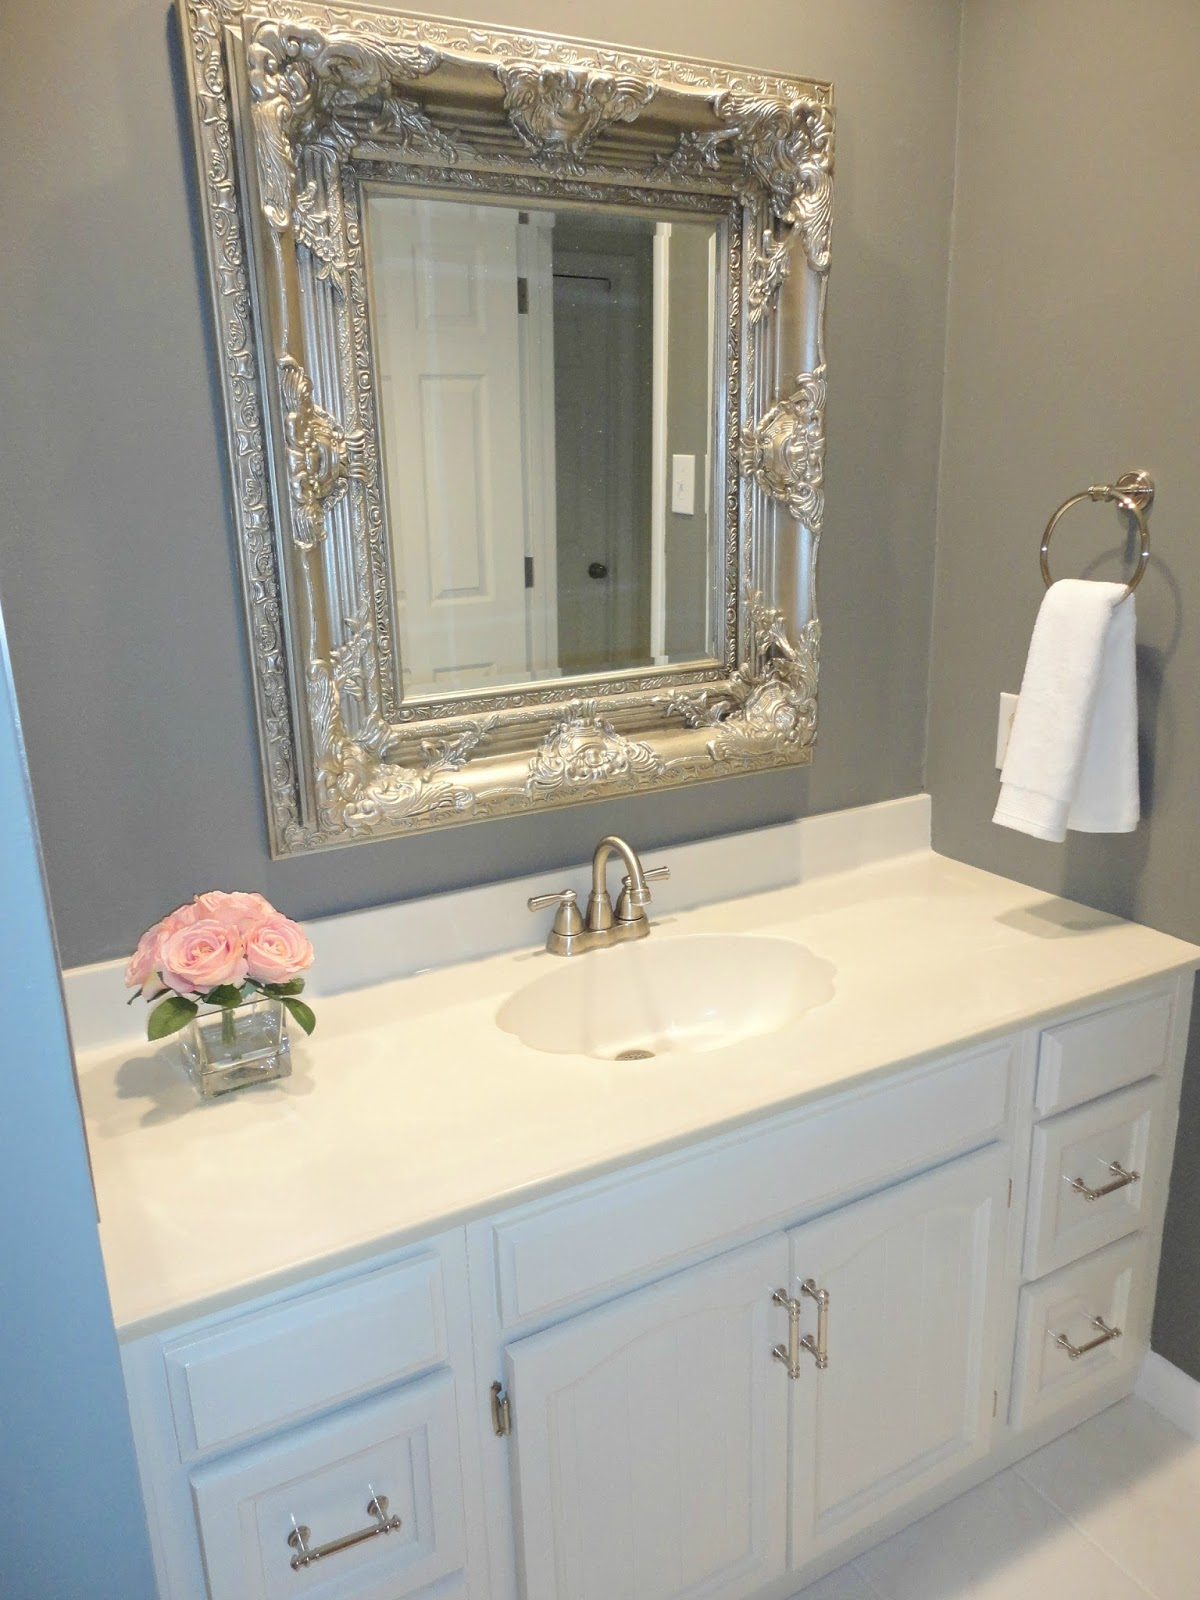 Stunning DIY Bathroom Remodel on a Budget